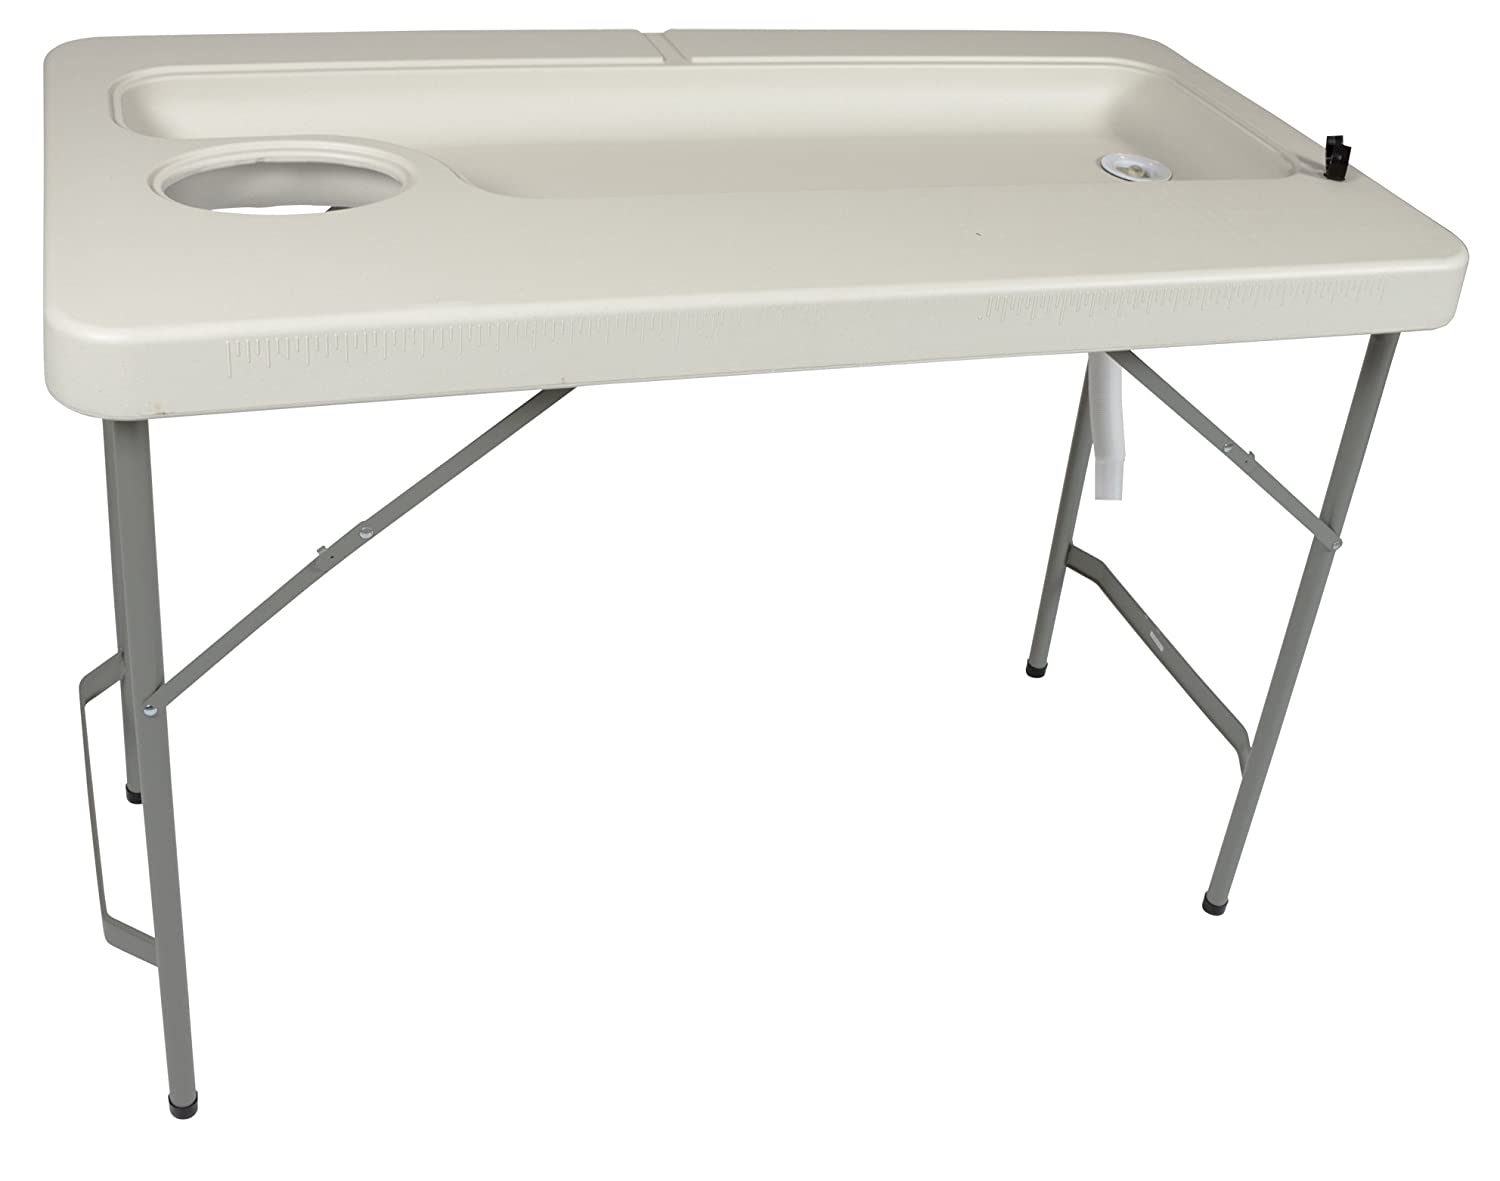 Coldcreek Outfitters Fillet Table (Gray) by Coldcreek Outfitters B004HQK9QI